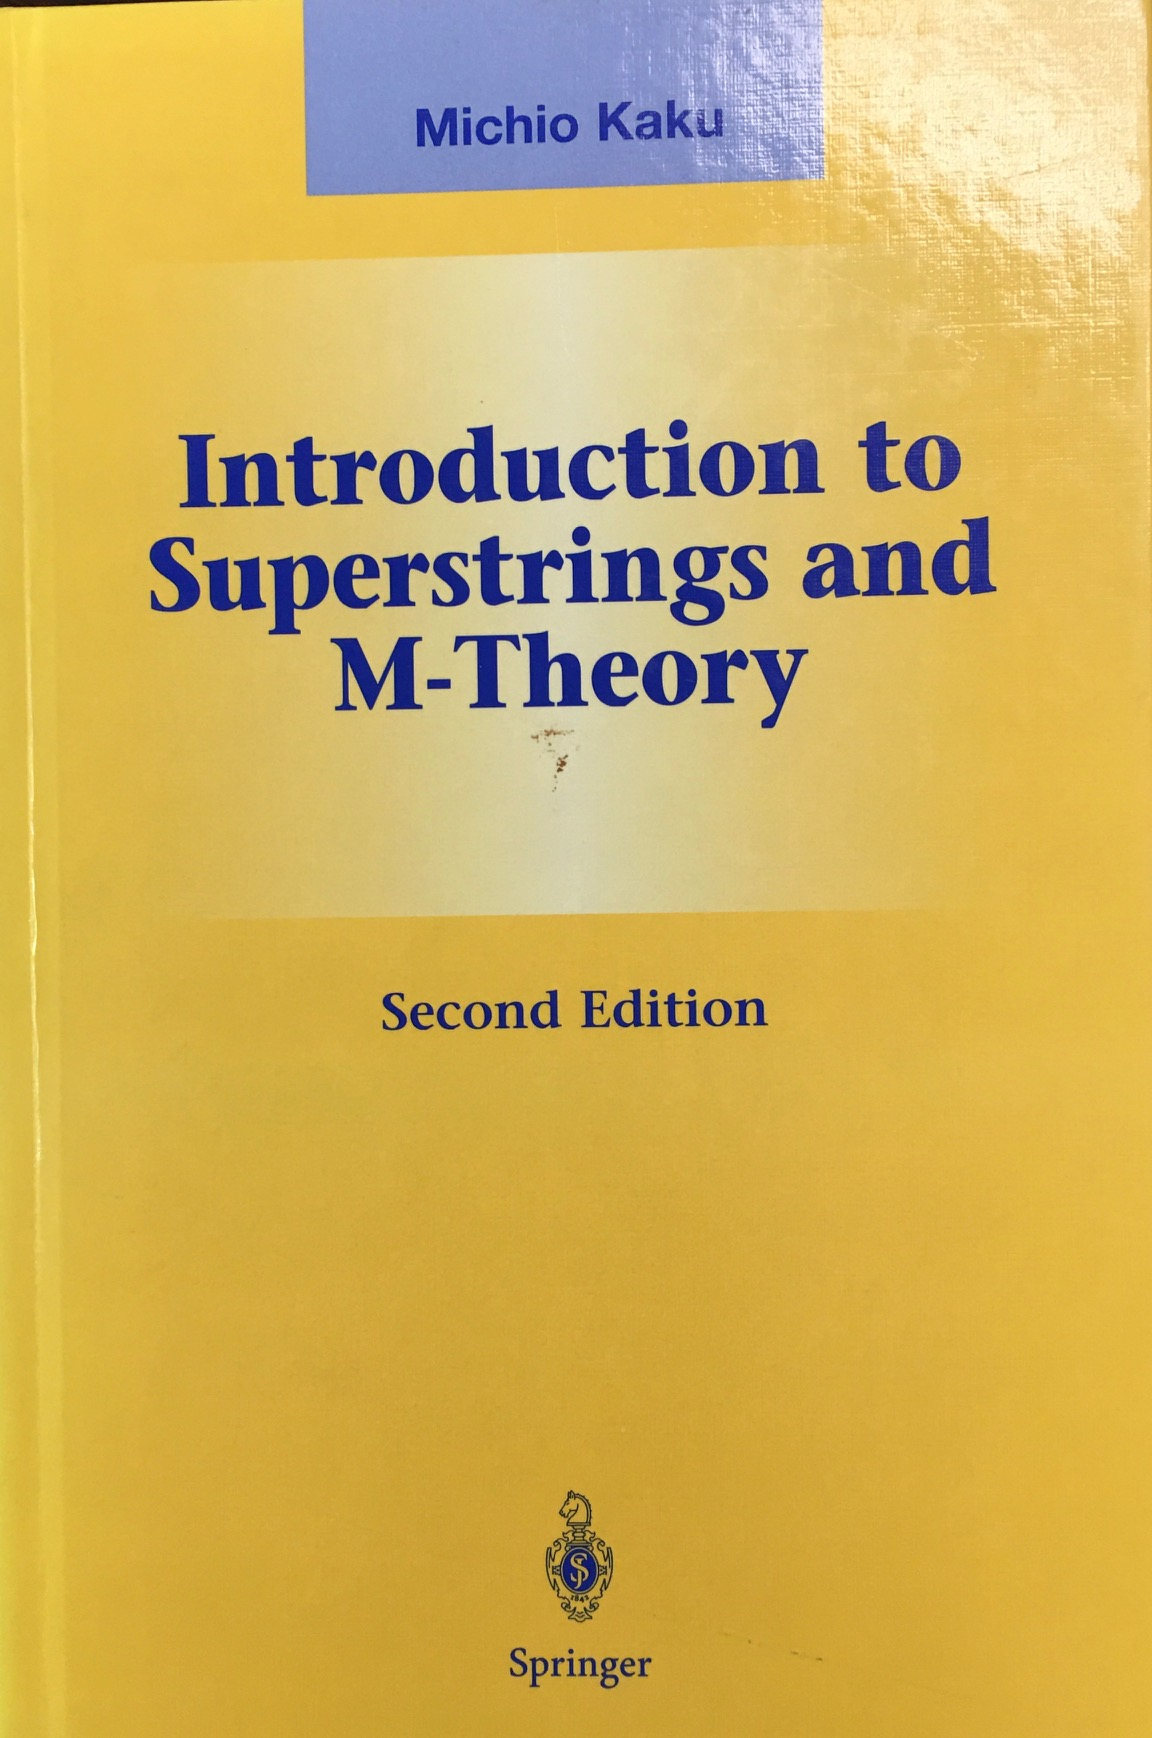 Image for Introduction to Superstrings and M-Theory - 2nd Edition  (Graduate Texts in Contemporary Physics)